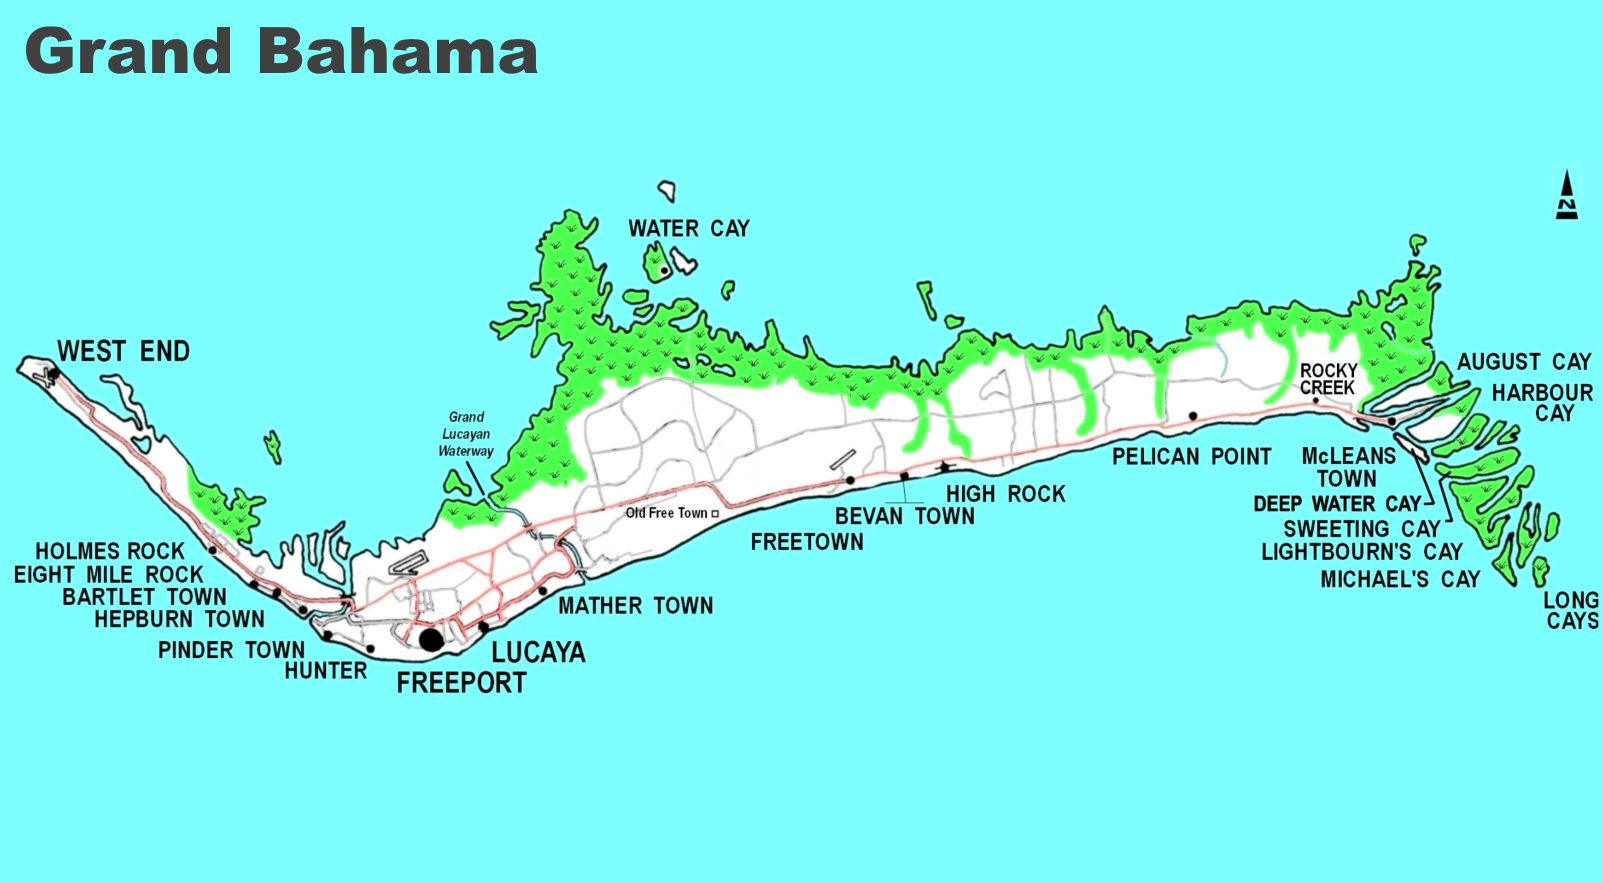 Map Of Grand Bahama Island Detailed map of Grand Bahama